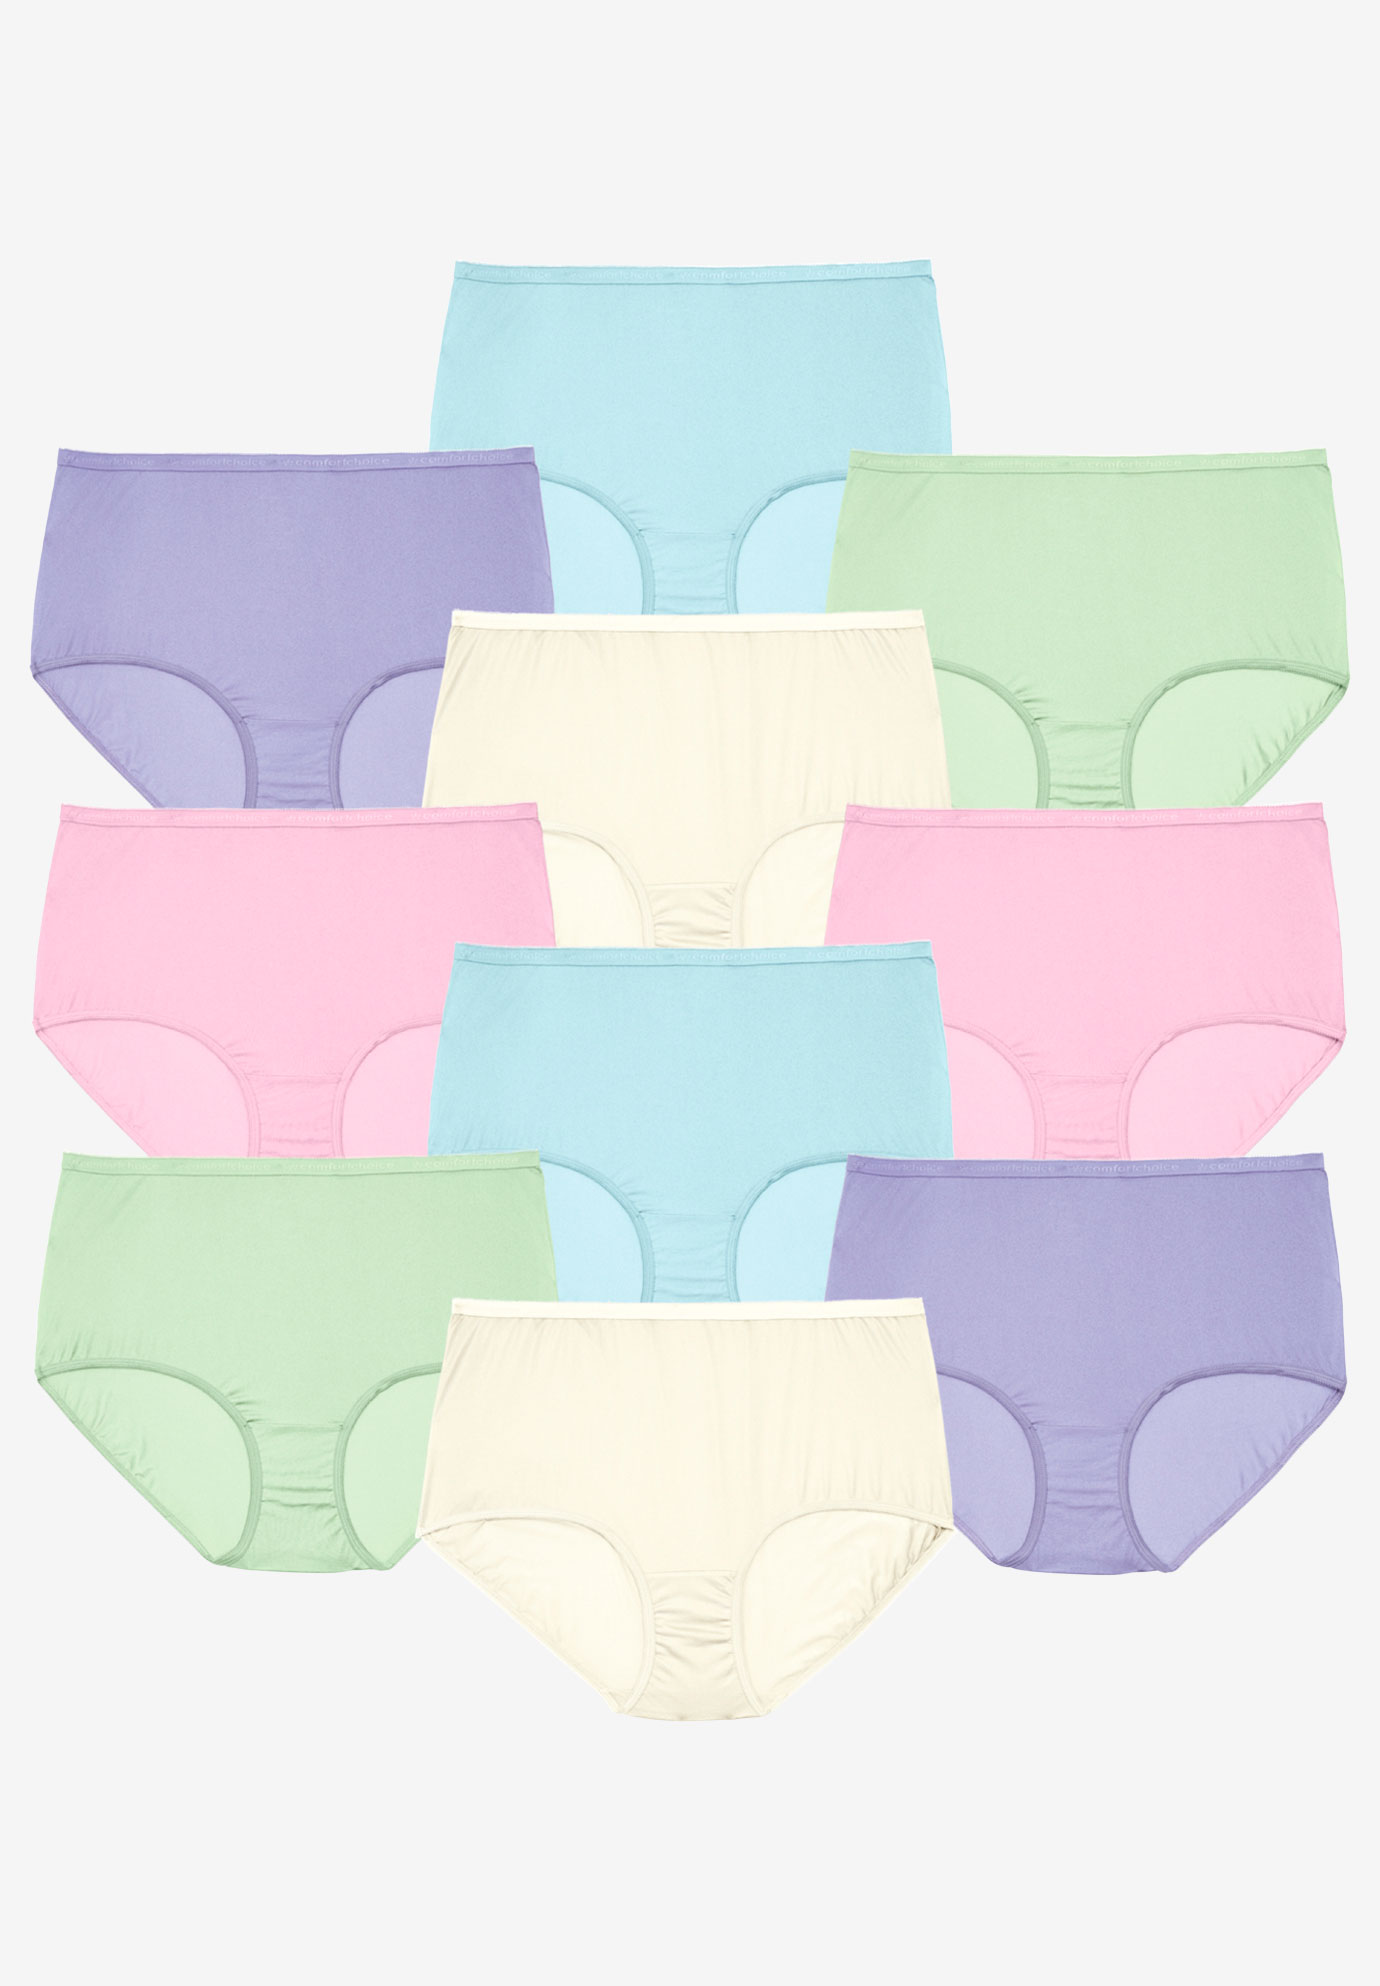 ww comforter clothing choice plus panties underwear chart choiceandreg panty pack in sizechart colorful by size comfort cotton